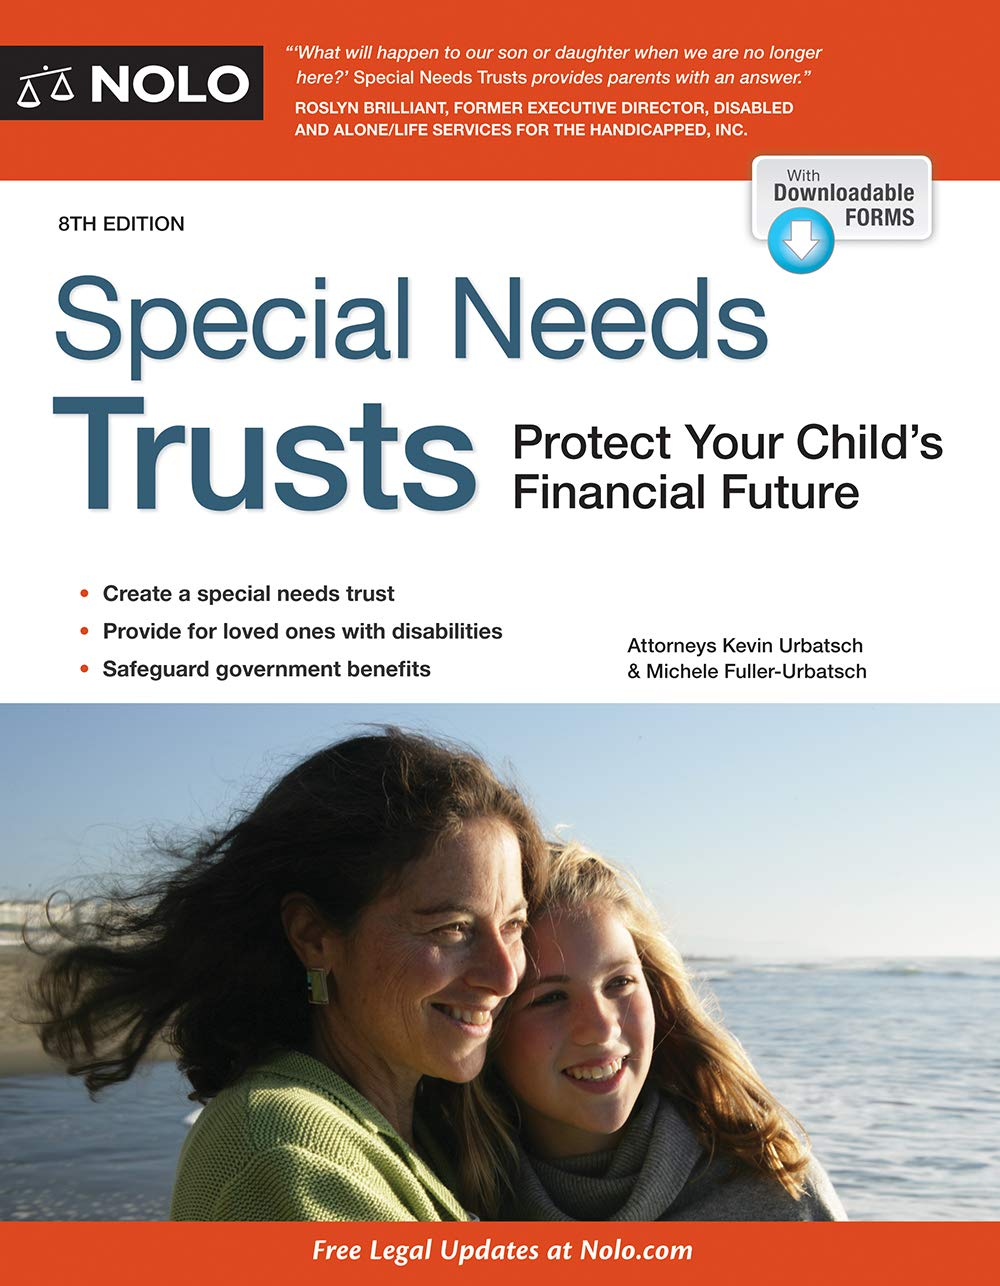 Special Needs Trusts: Protect Your Child's Financial Future by NOLO